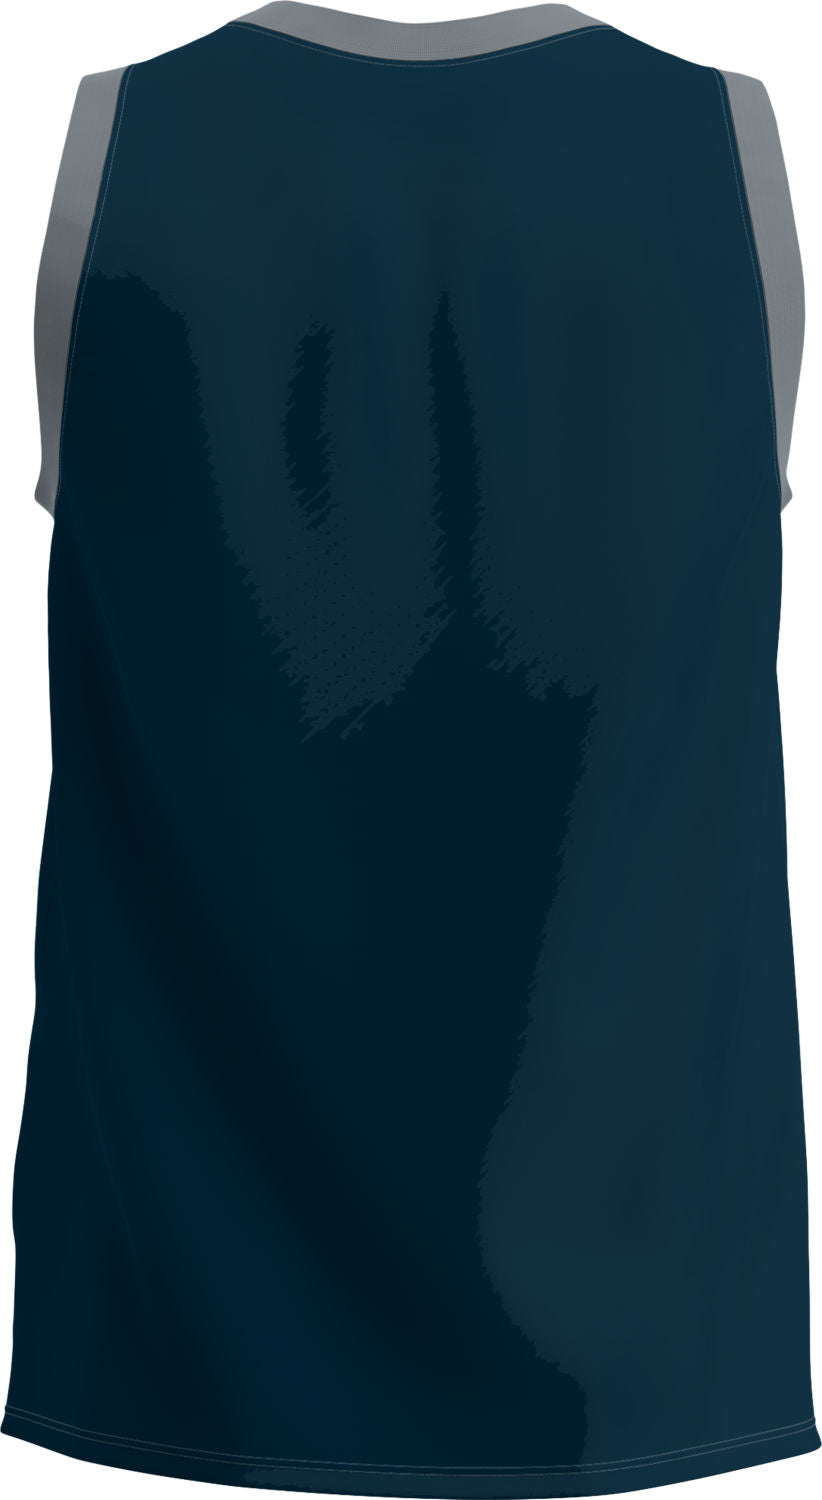 Utah State University Adult Replica Basketball Fan Jersey - Classic